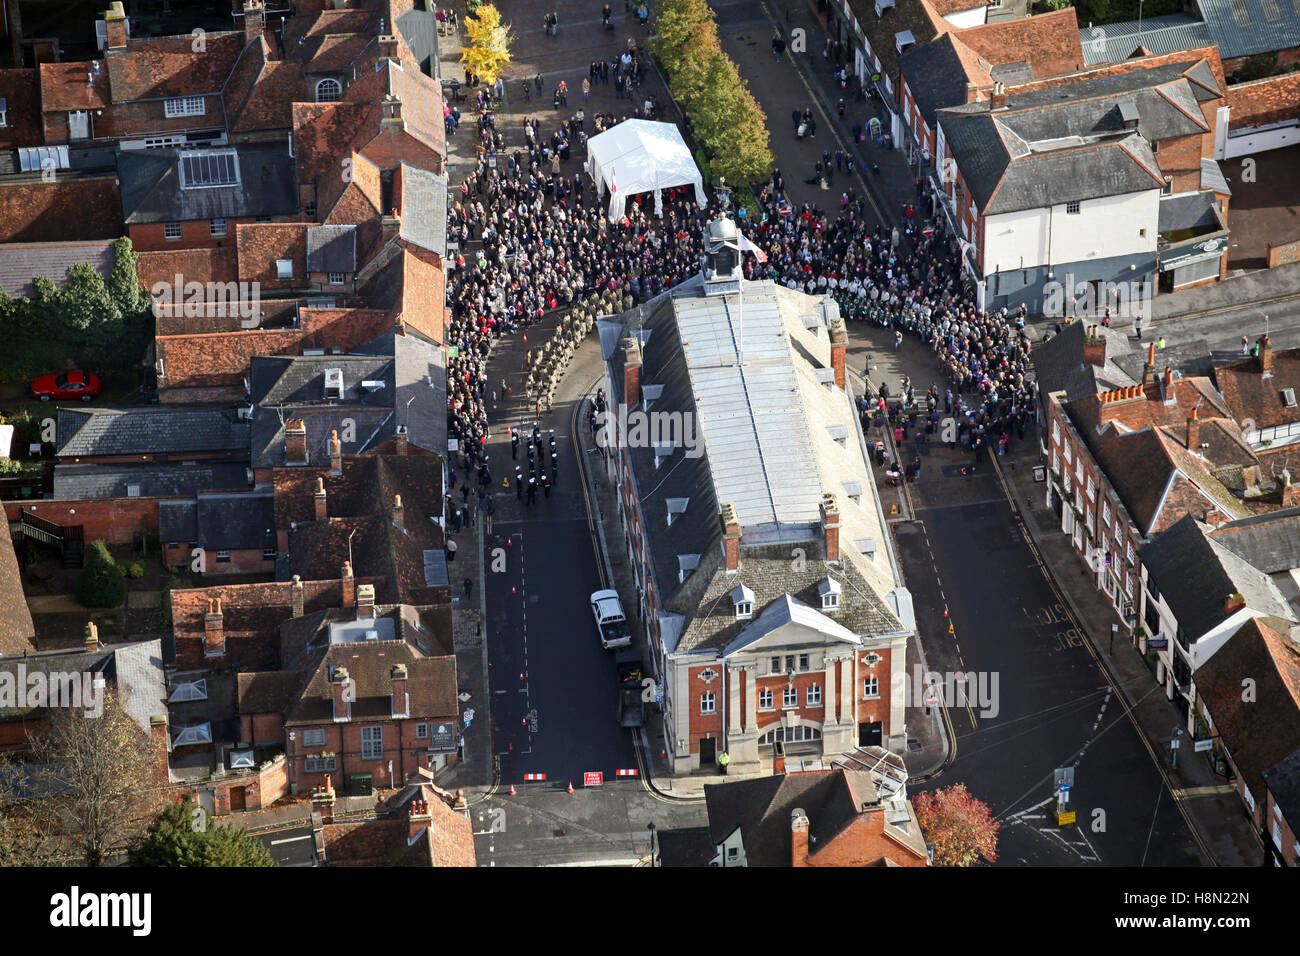 aerial view of Henley on Thames Market Square & Town Hall on Remembrance Sunday 2016, UK - Stock Image